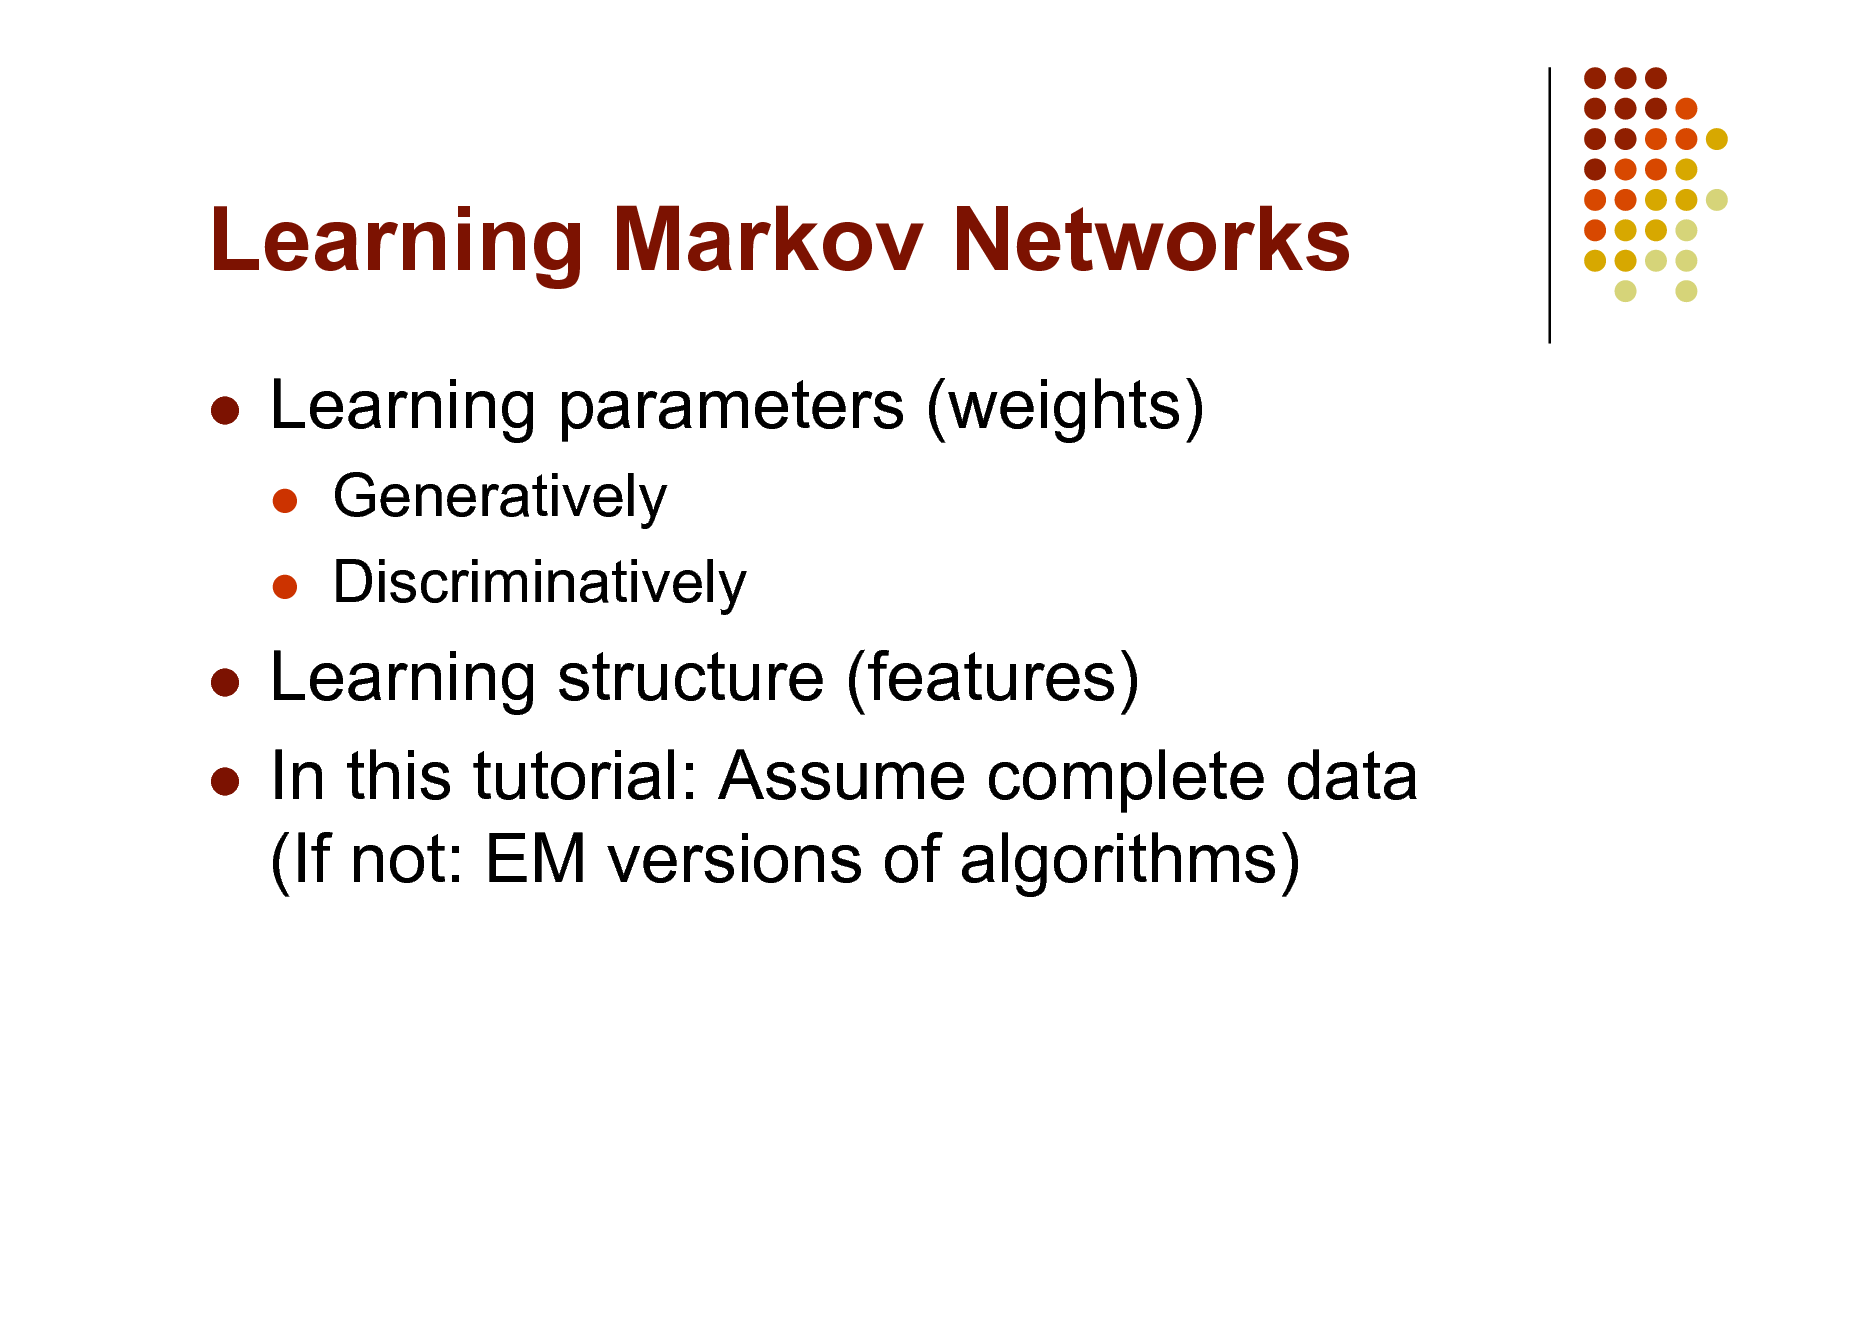 Slide: Learning Markov Networks   Learning parameters (weights)    Generatively Discriminatively  Learning structure (features)  In this tutorial: Assume complete data (If not: EM versions of algorithms)